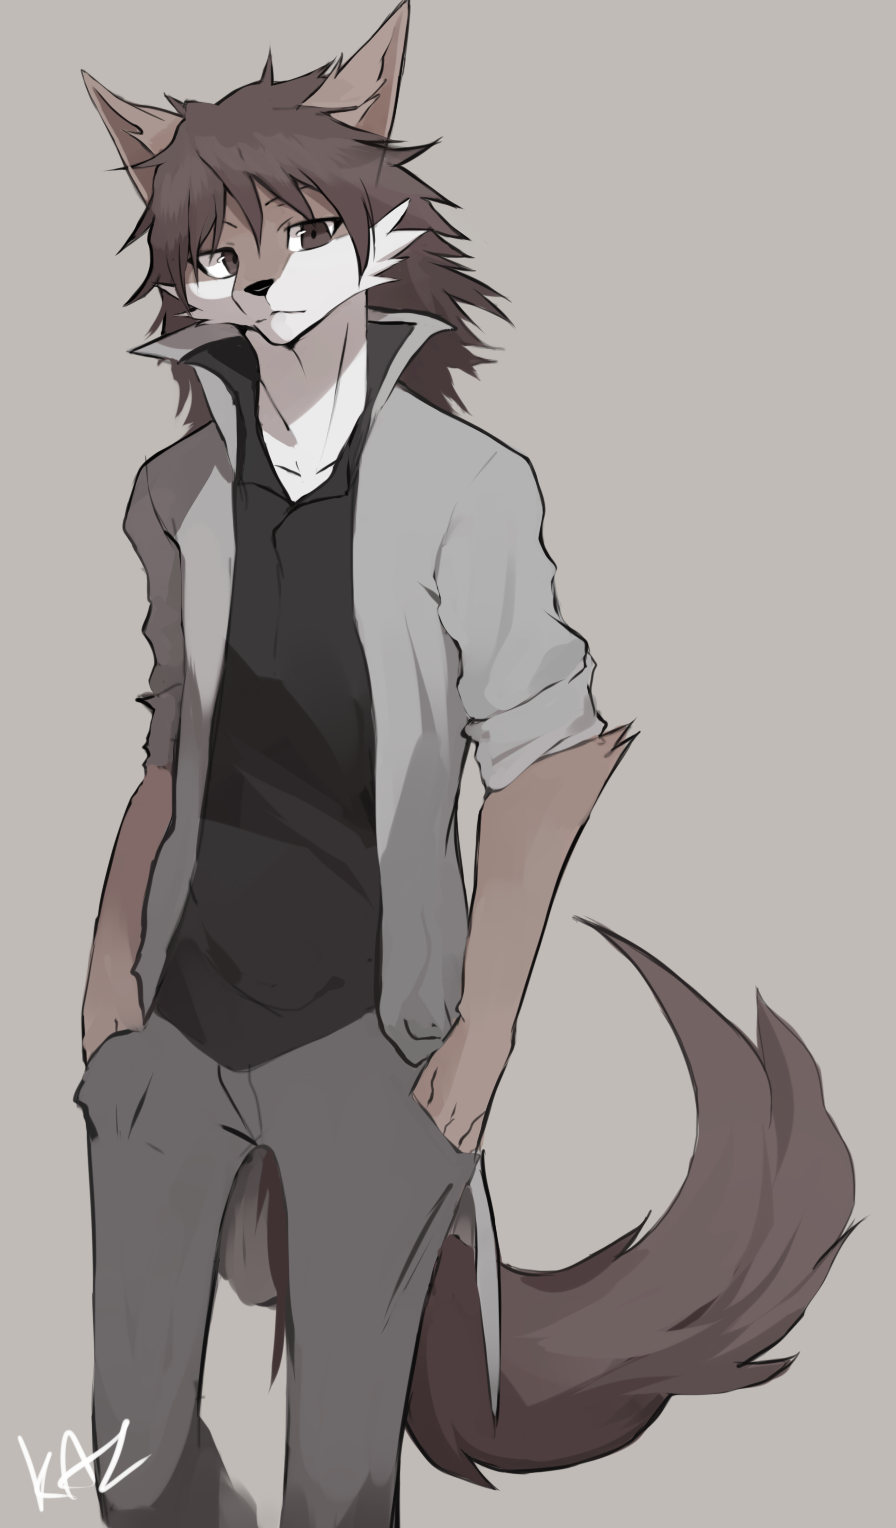 Anime Wolf Hybrid Male Bokunoheroacademiacosplay Anime Manga Anthro Furry Furry Wolf Furry Drawing